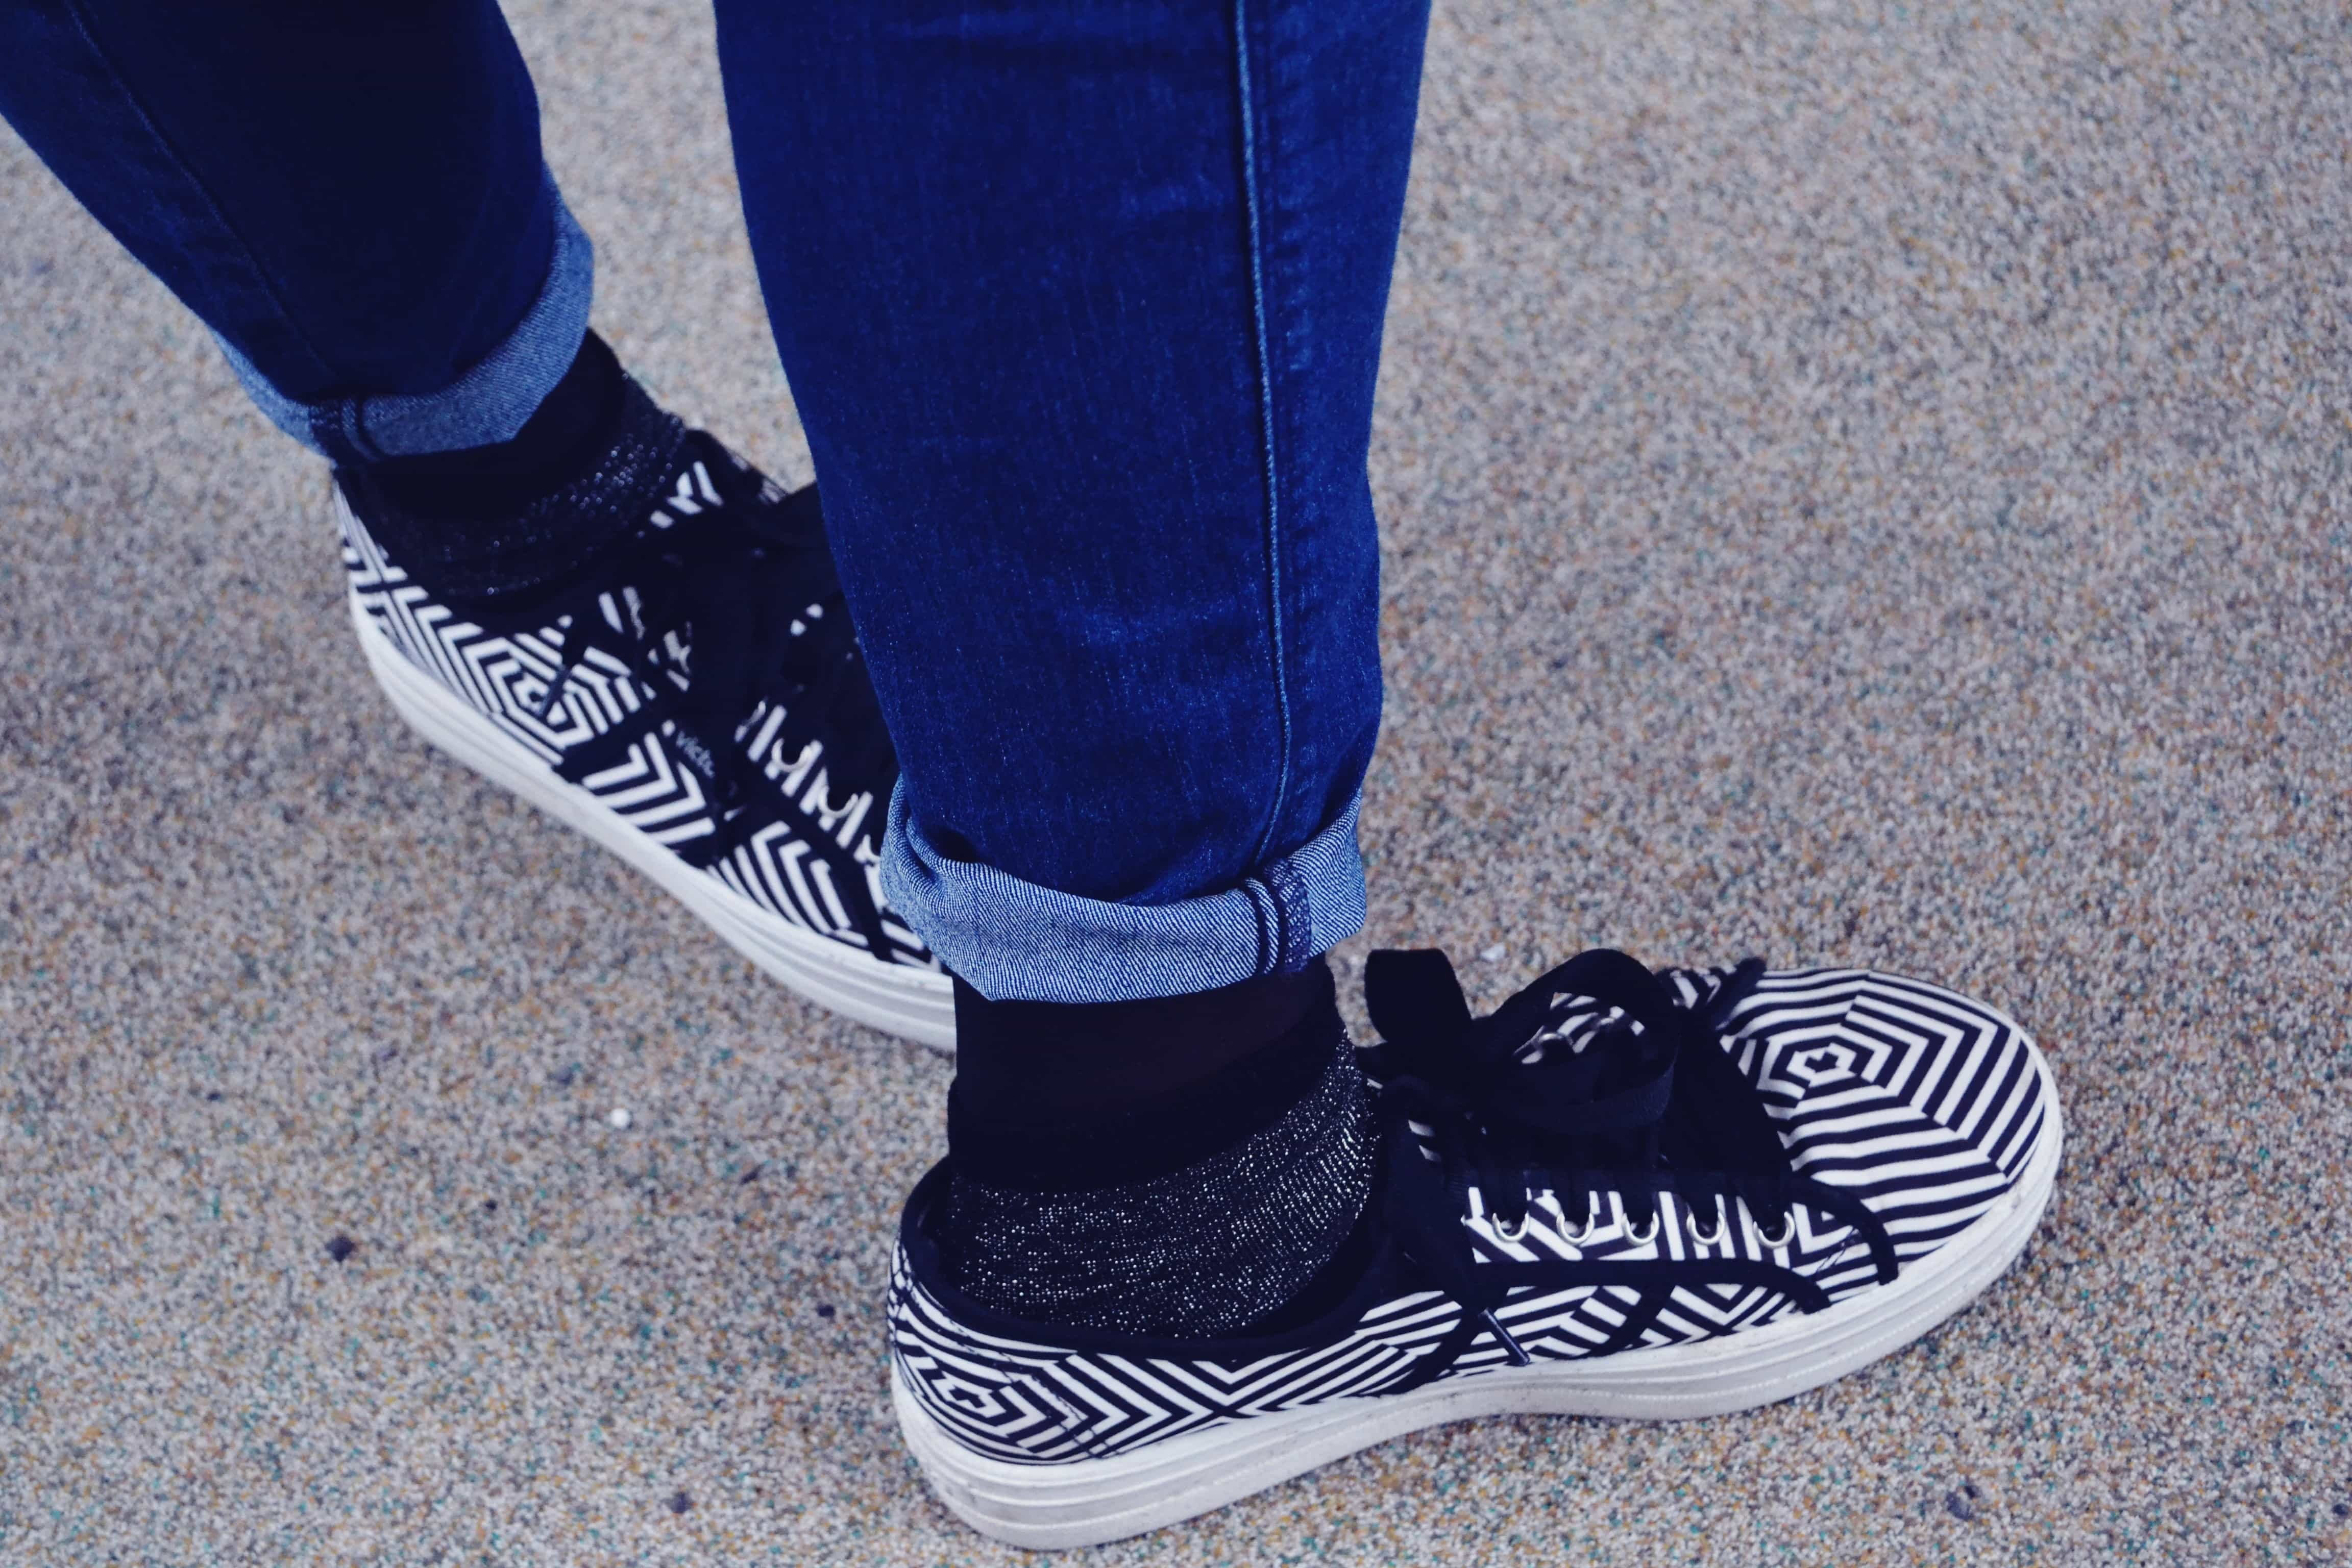 Close-up showing rolled up blue skinny jeans, glittery black socks and black and white stripy platform shoes.